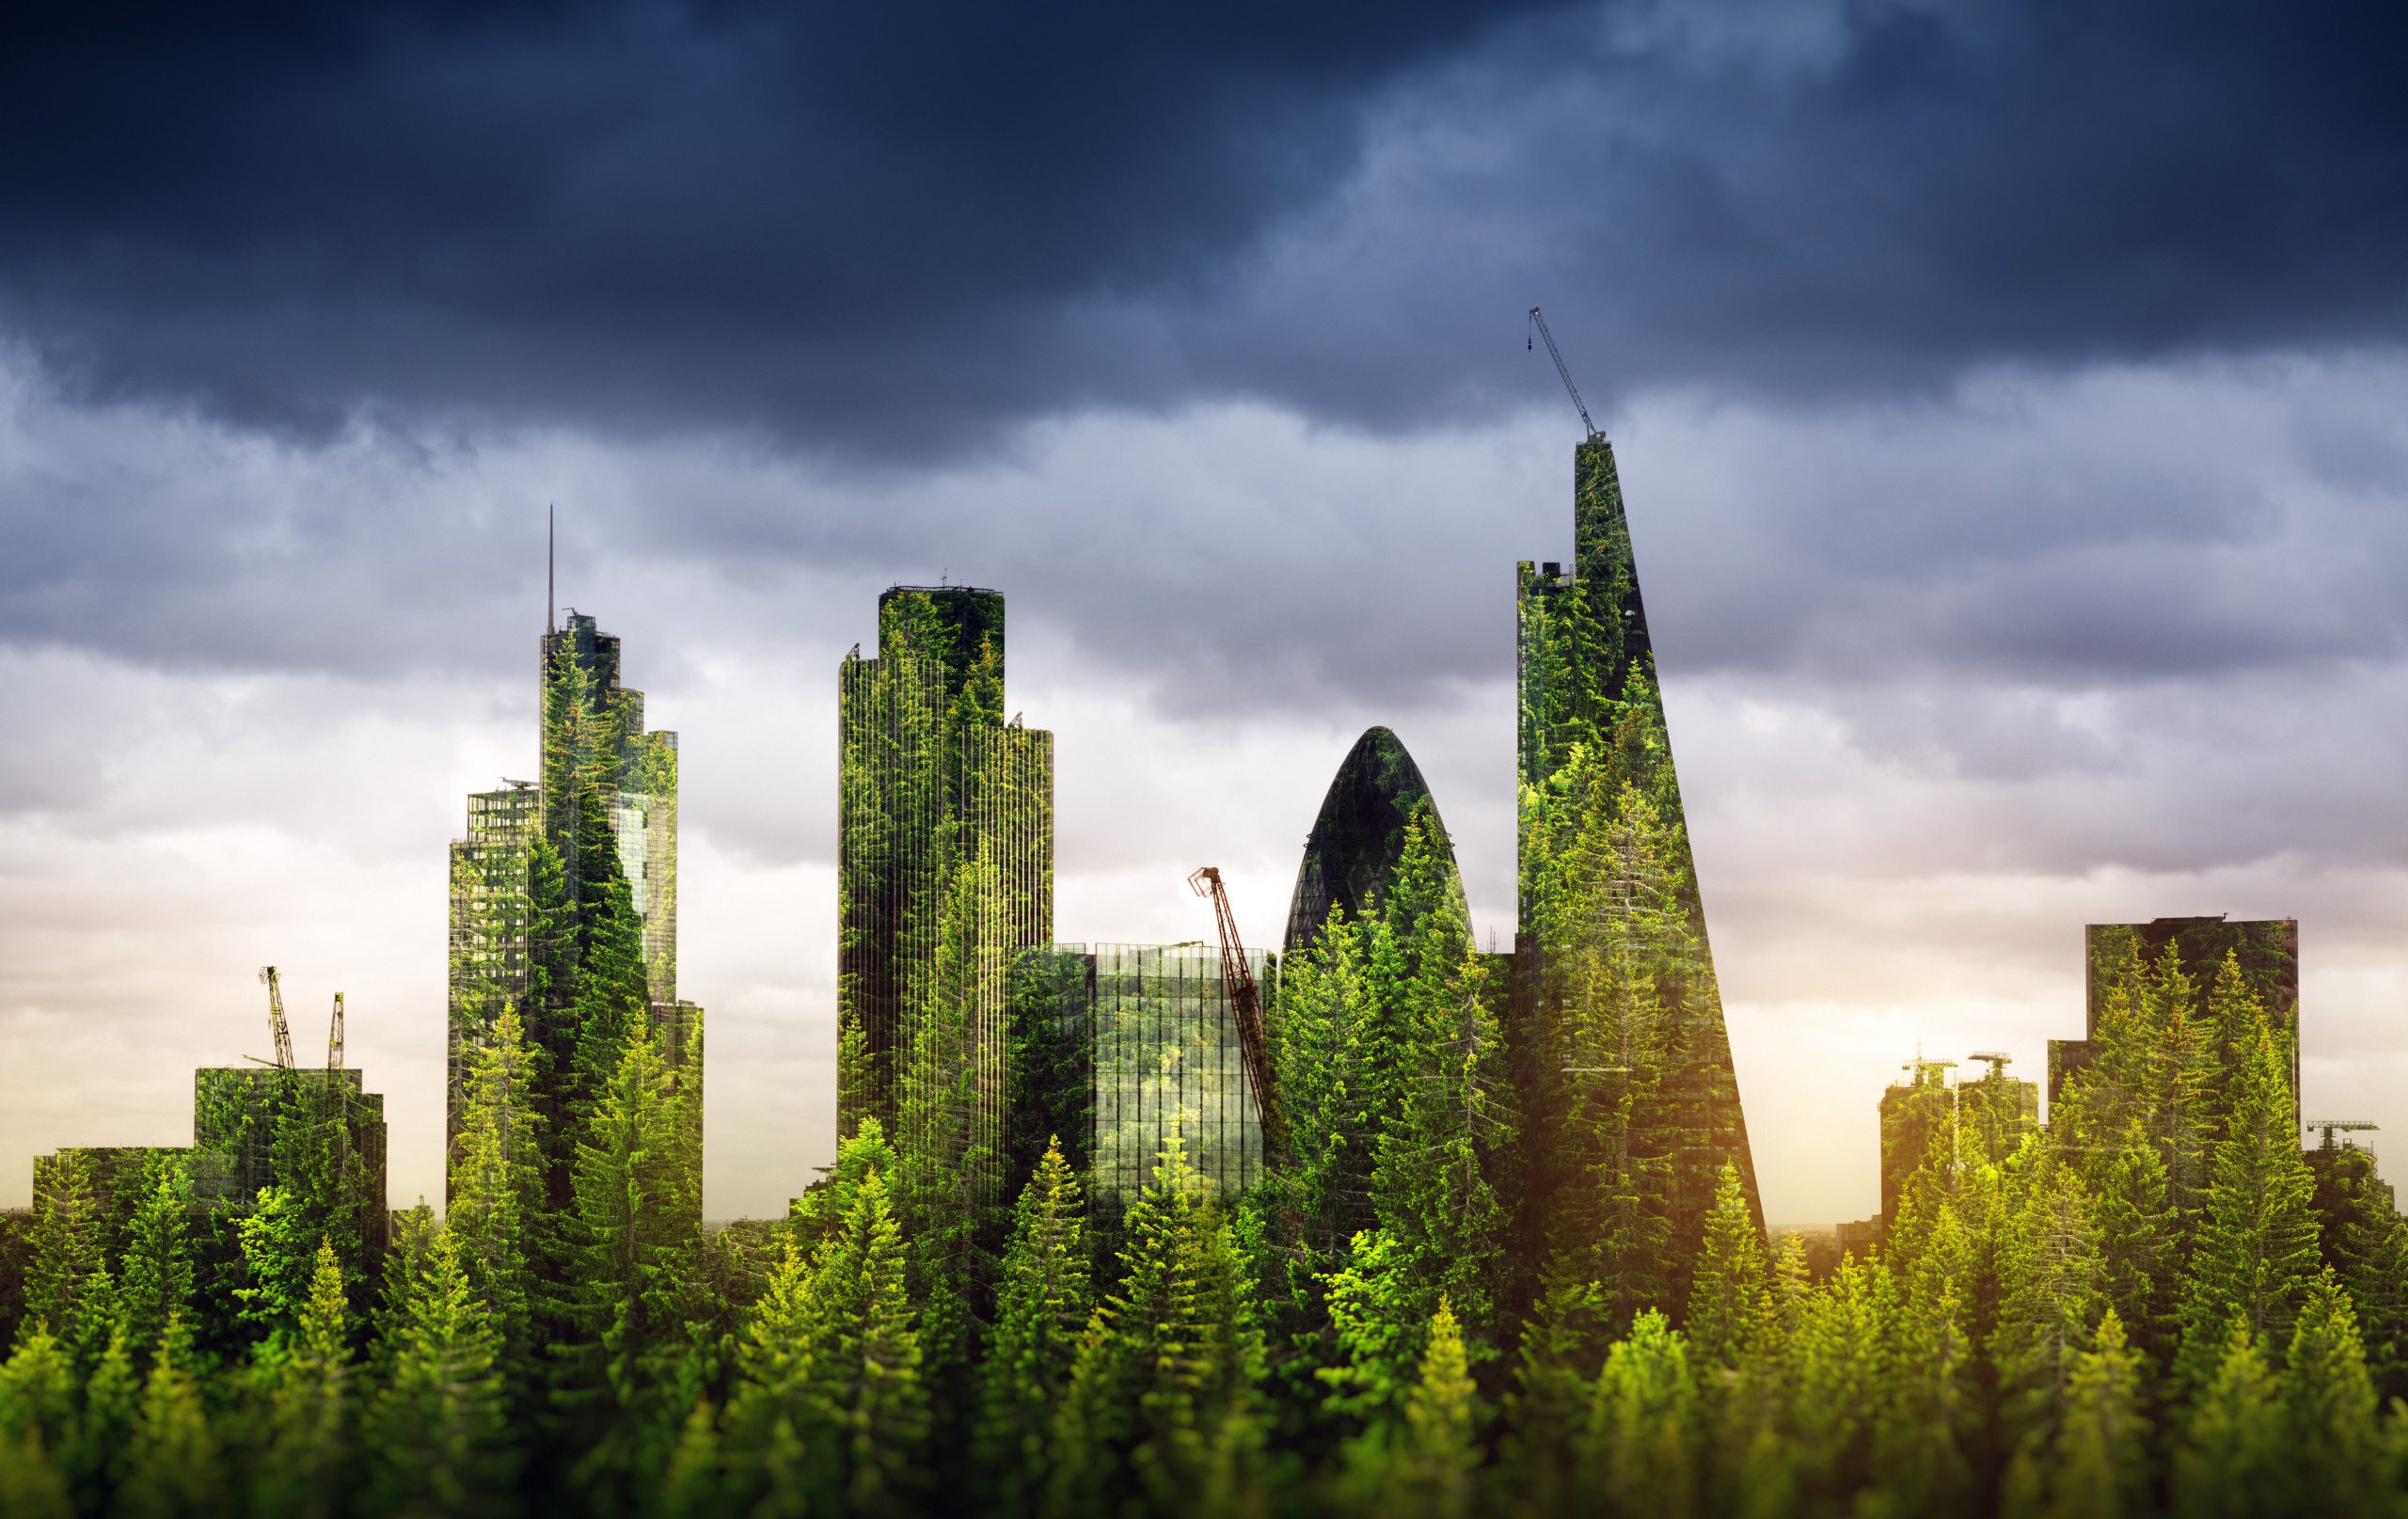 City of London composed of greenery